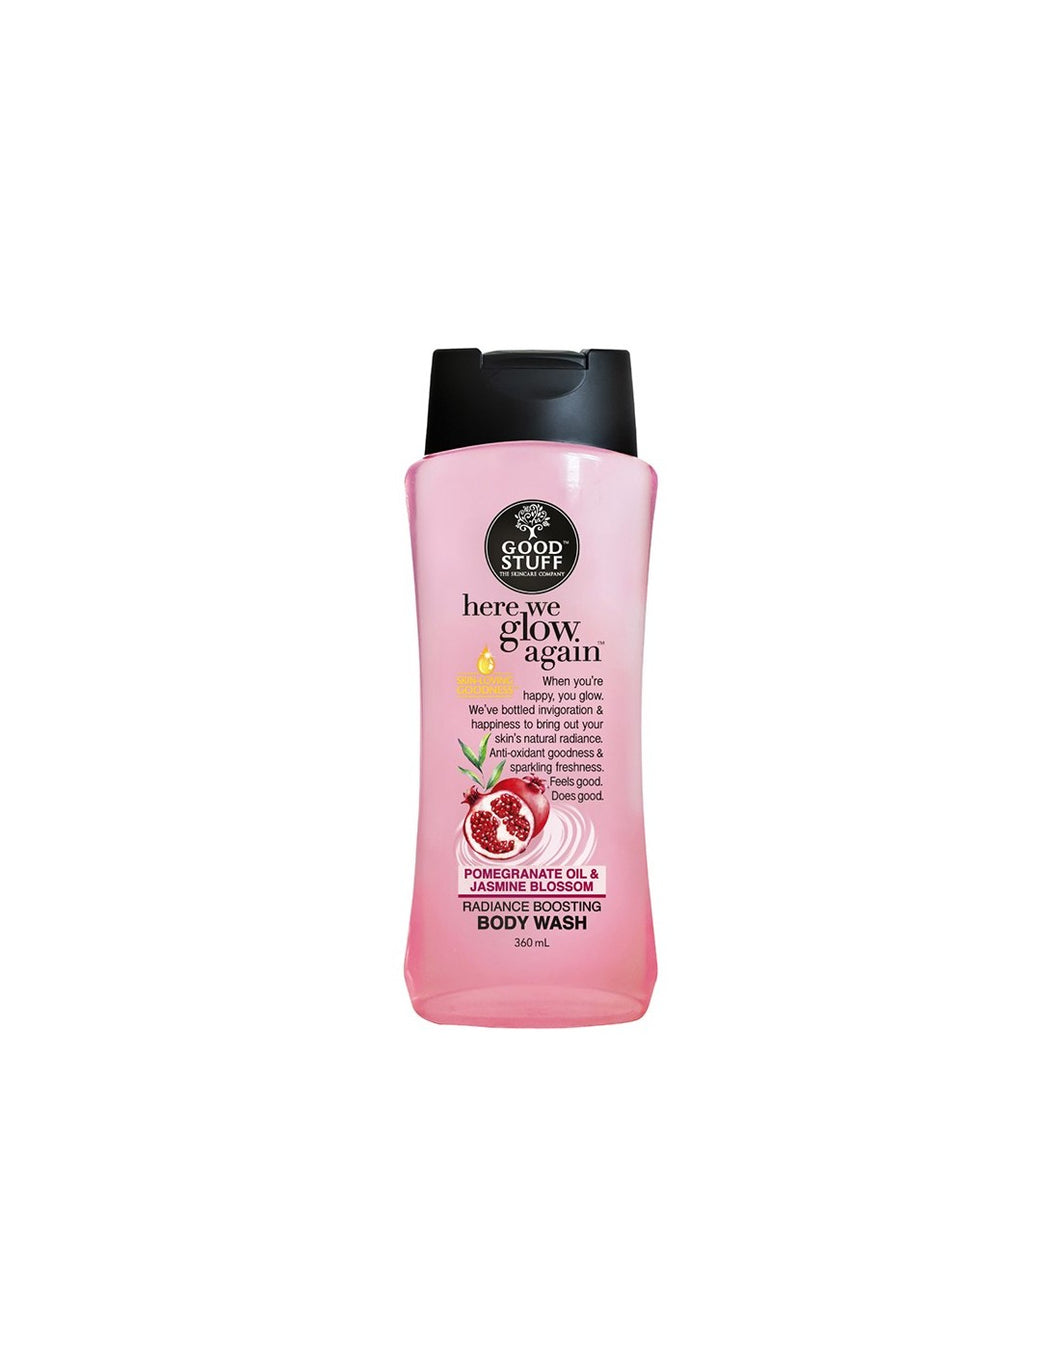 Good Stuff Here We Glow Again Body Lotion 360ml